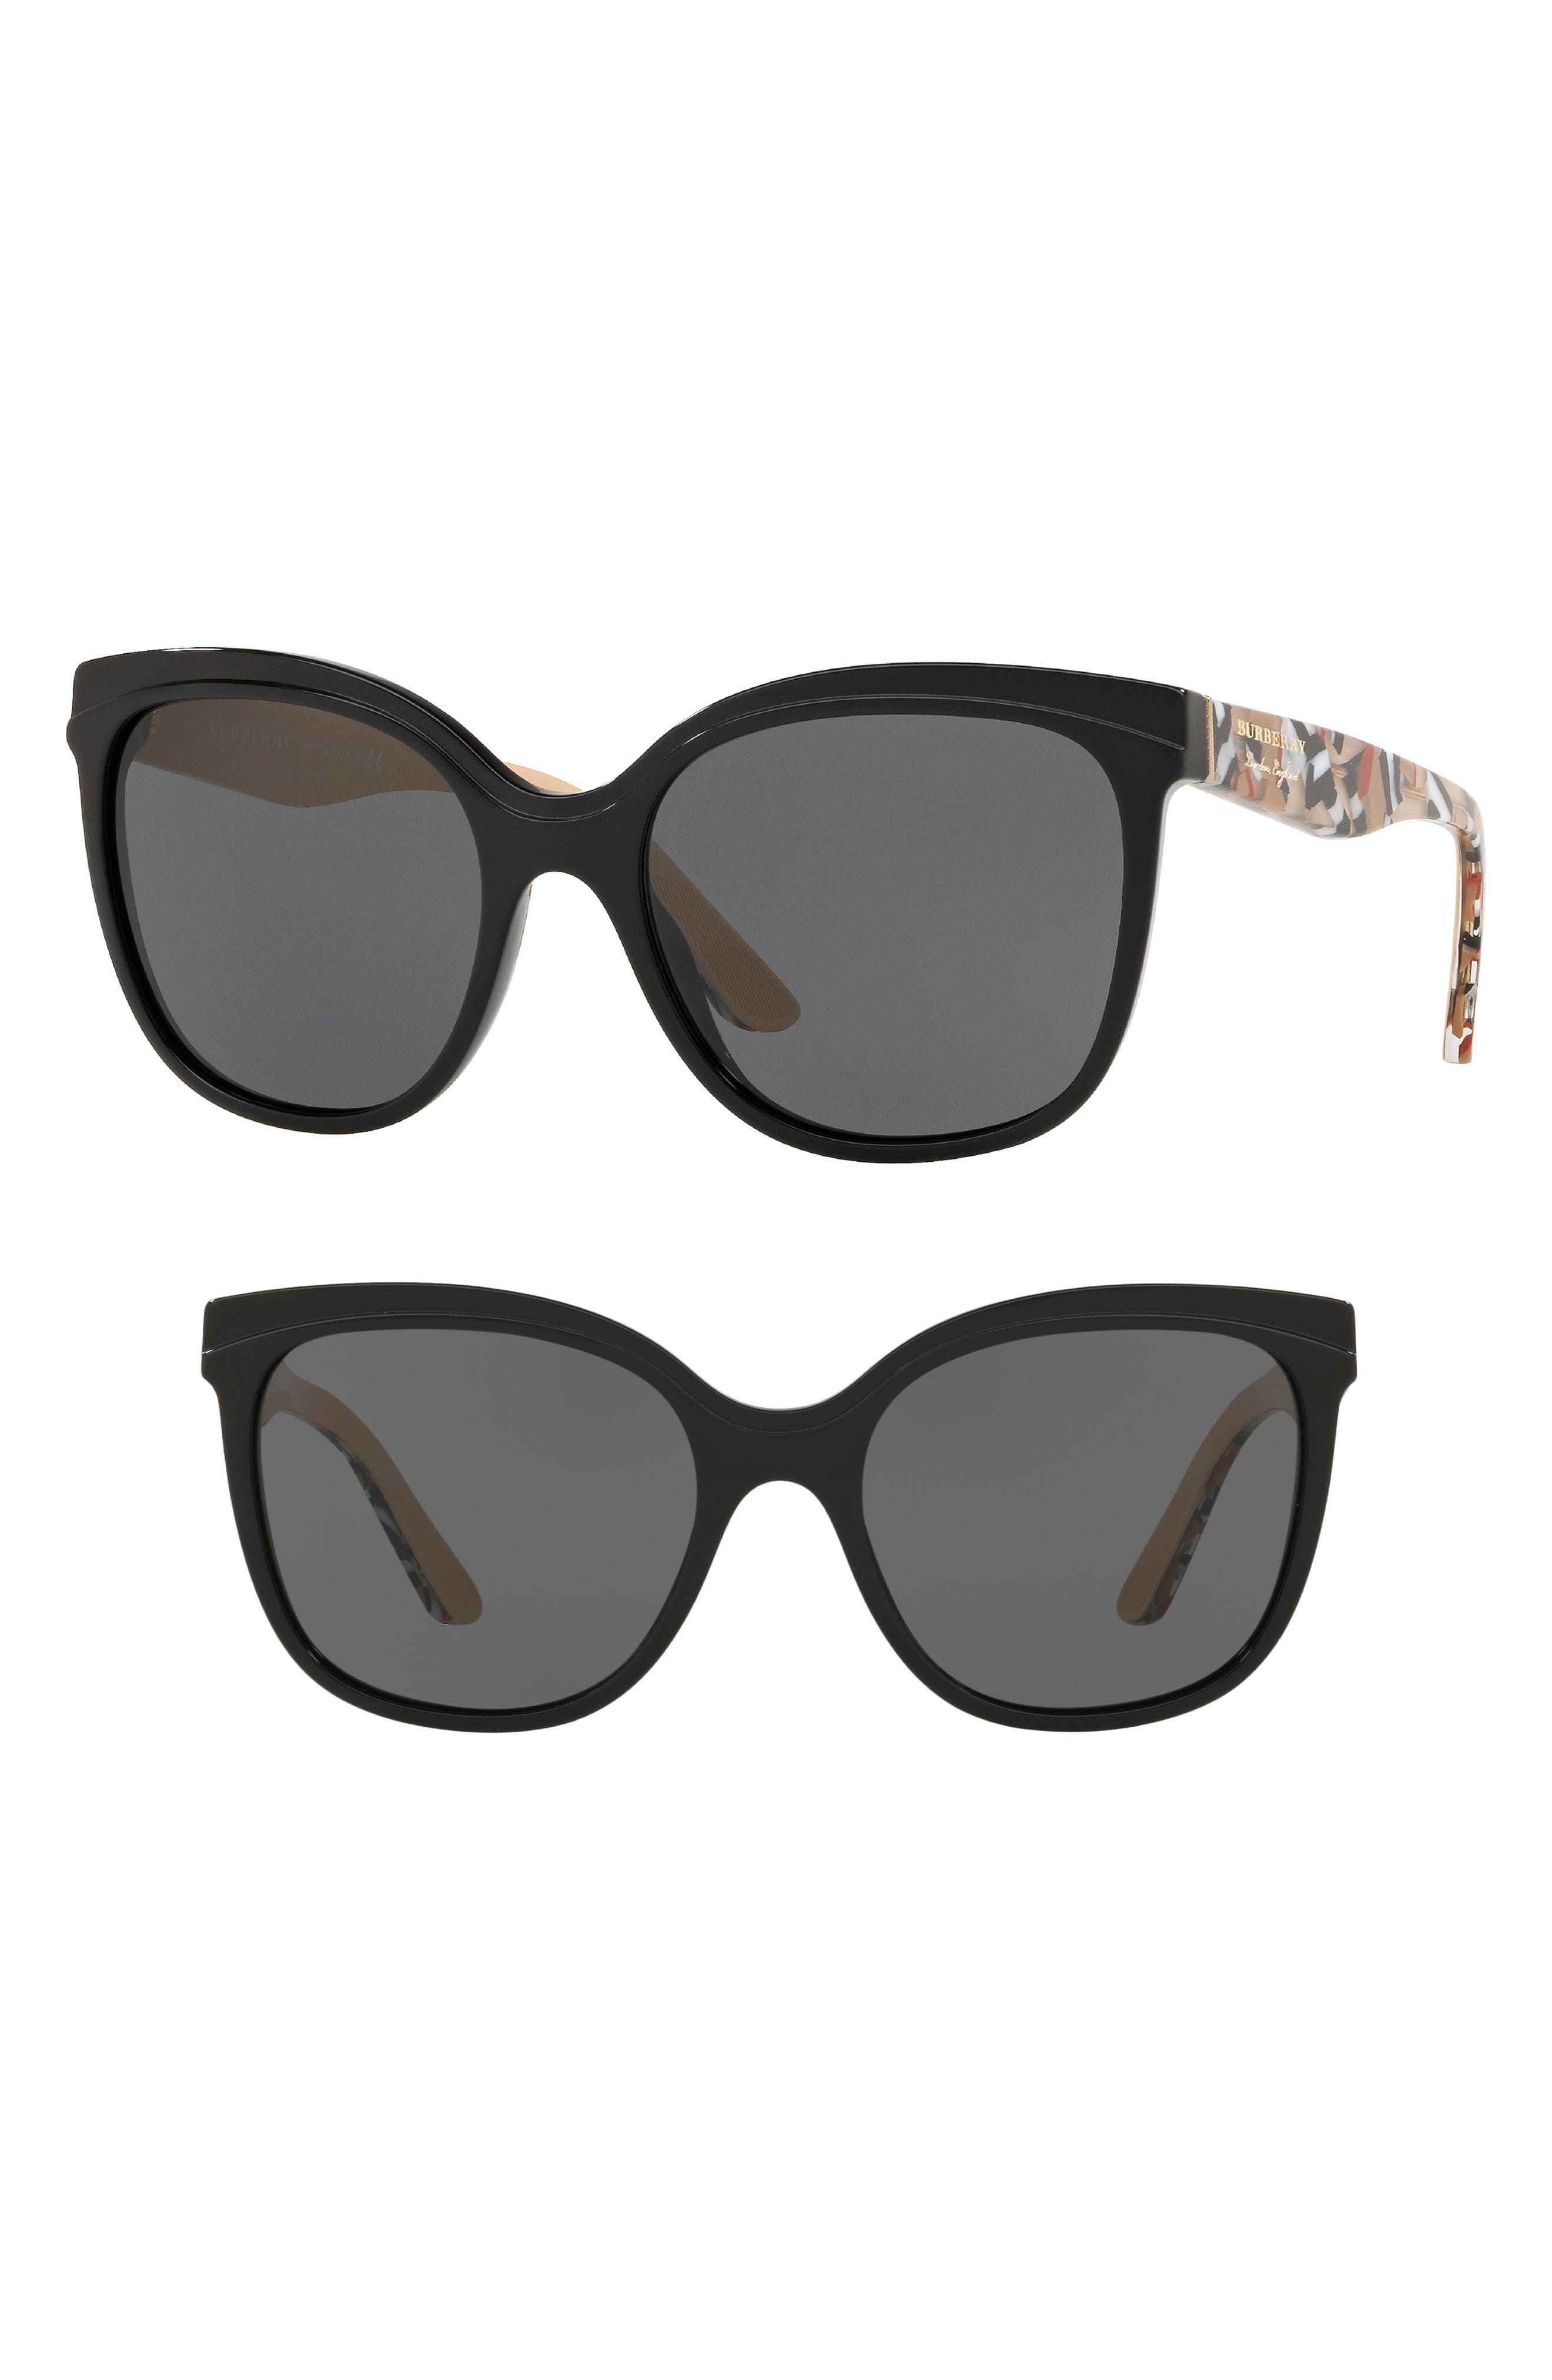 Marblecheck 55mm Square Sunglasses,                         Main,                         color, BLACK SOLID